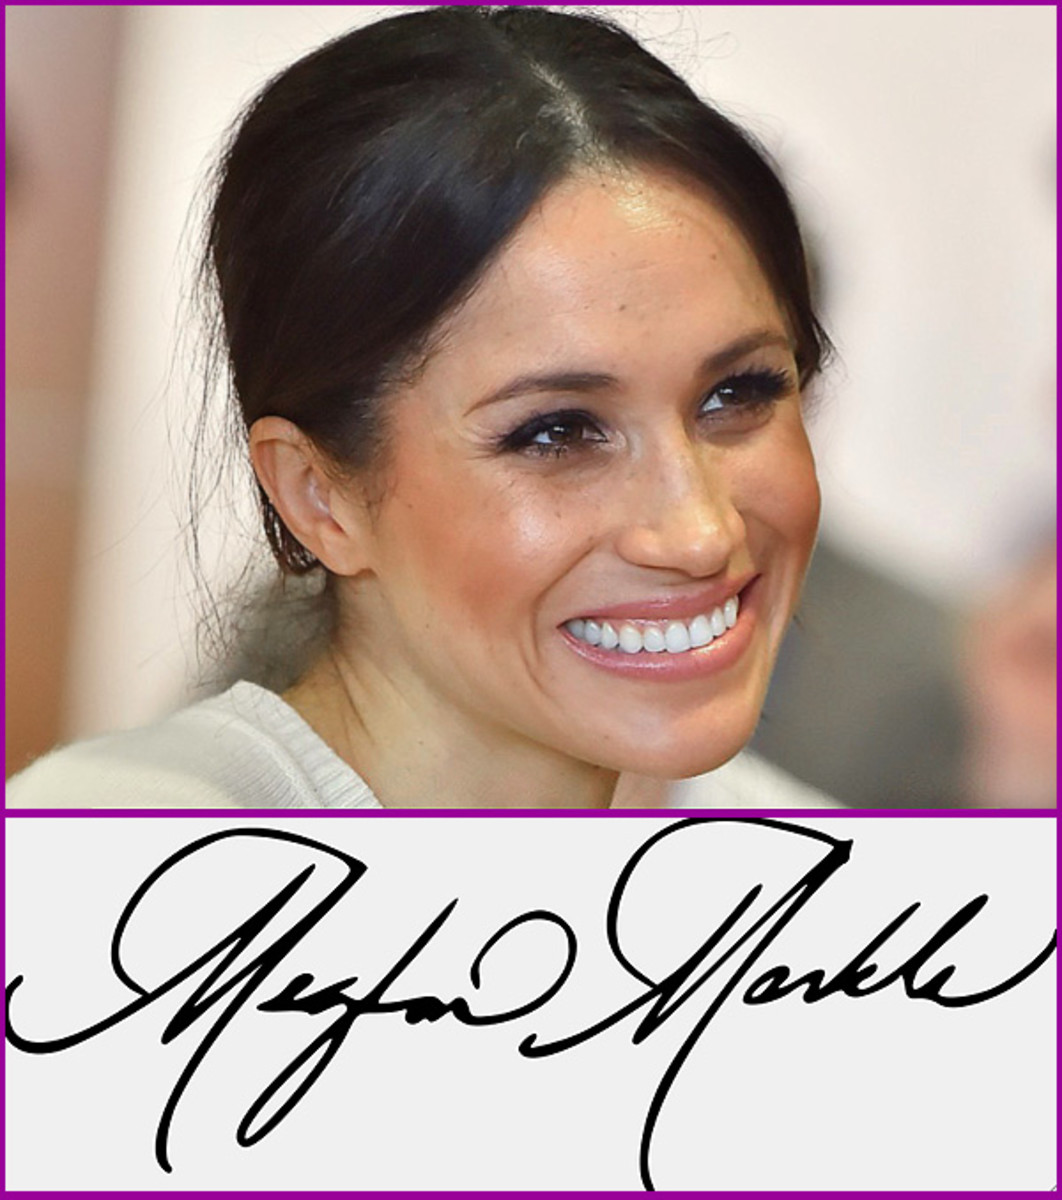 Before she married Prince Harry, you could buy her autograph for $5.  Today, a Meghan Markle autograph can cost you $100 or more.